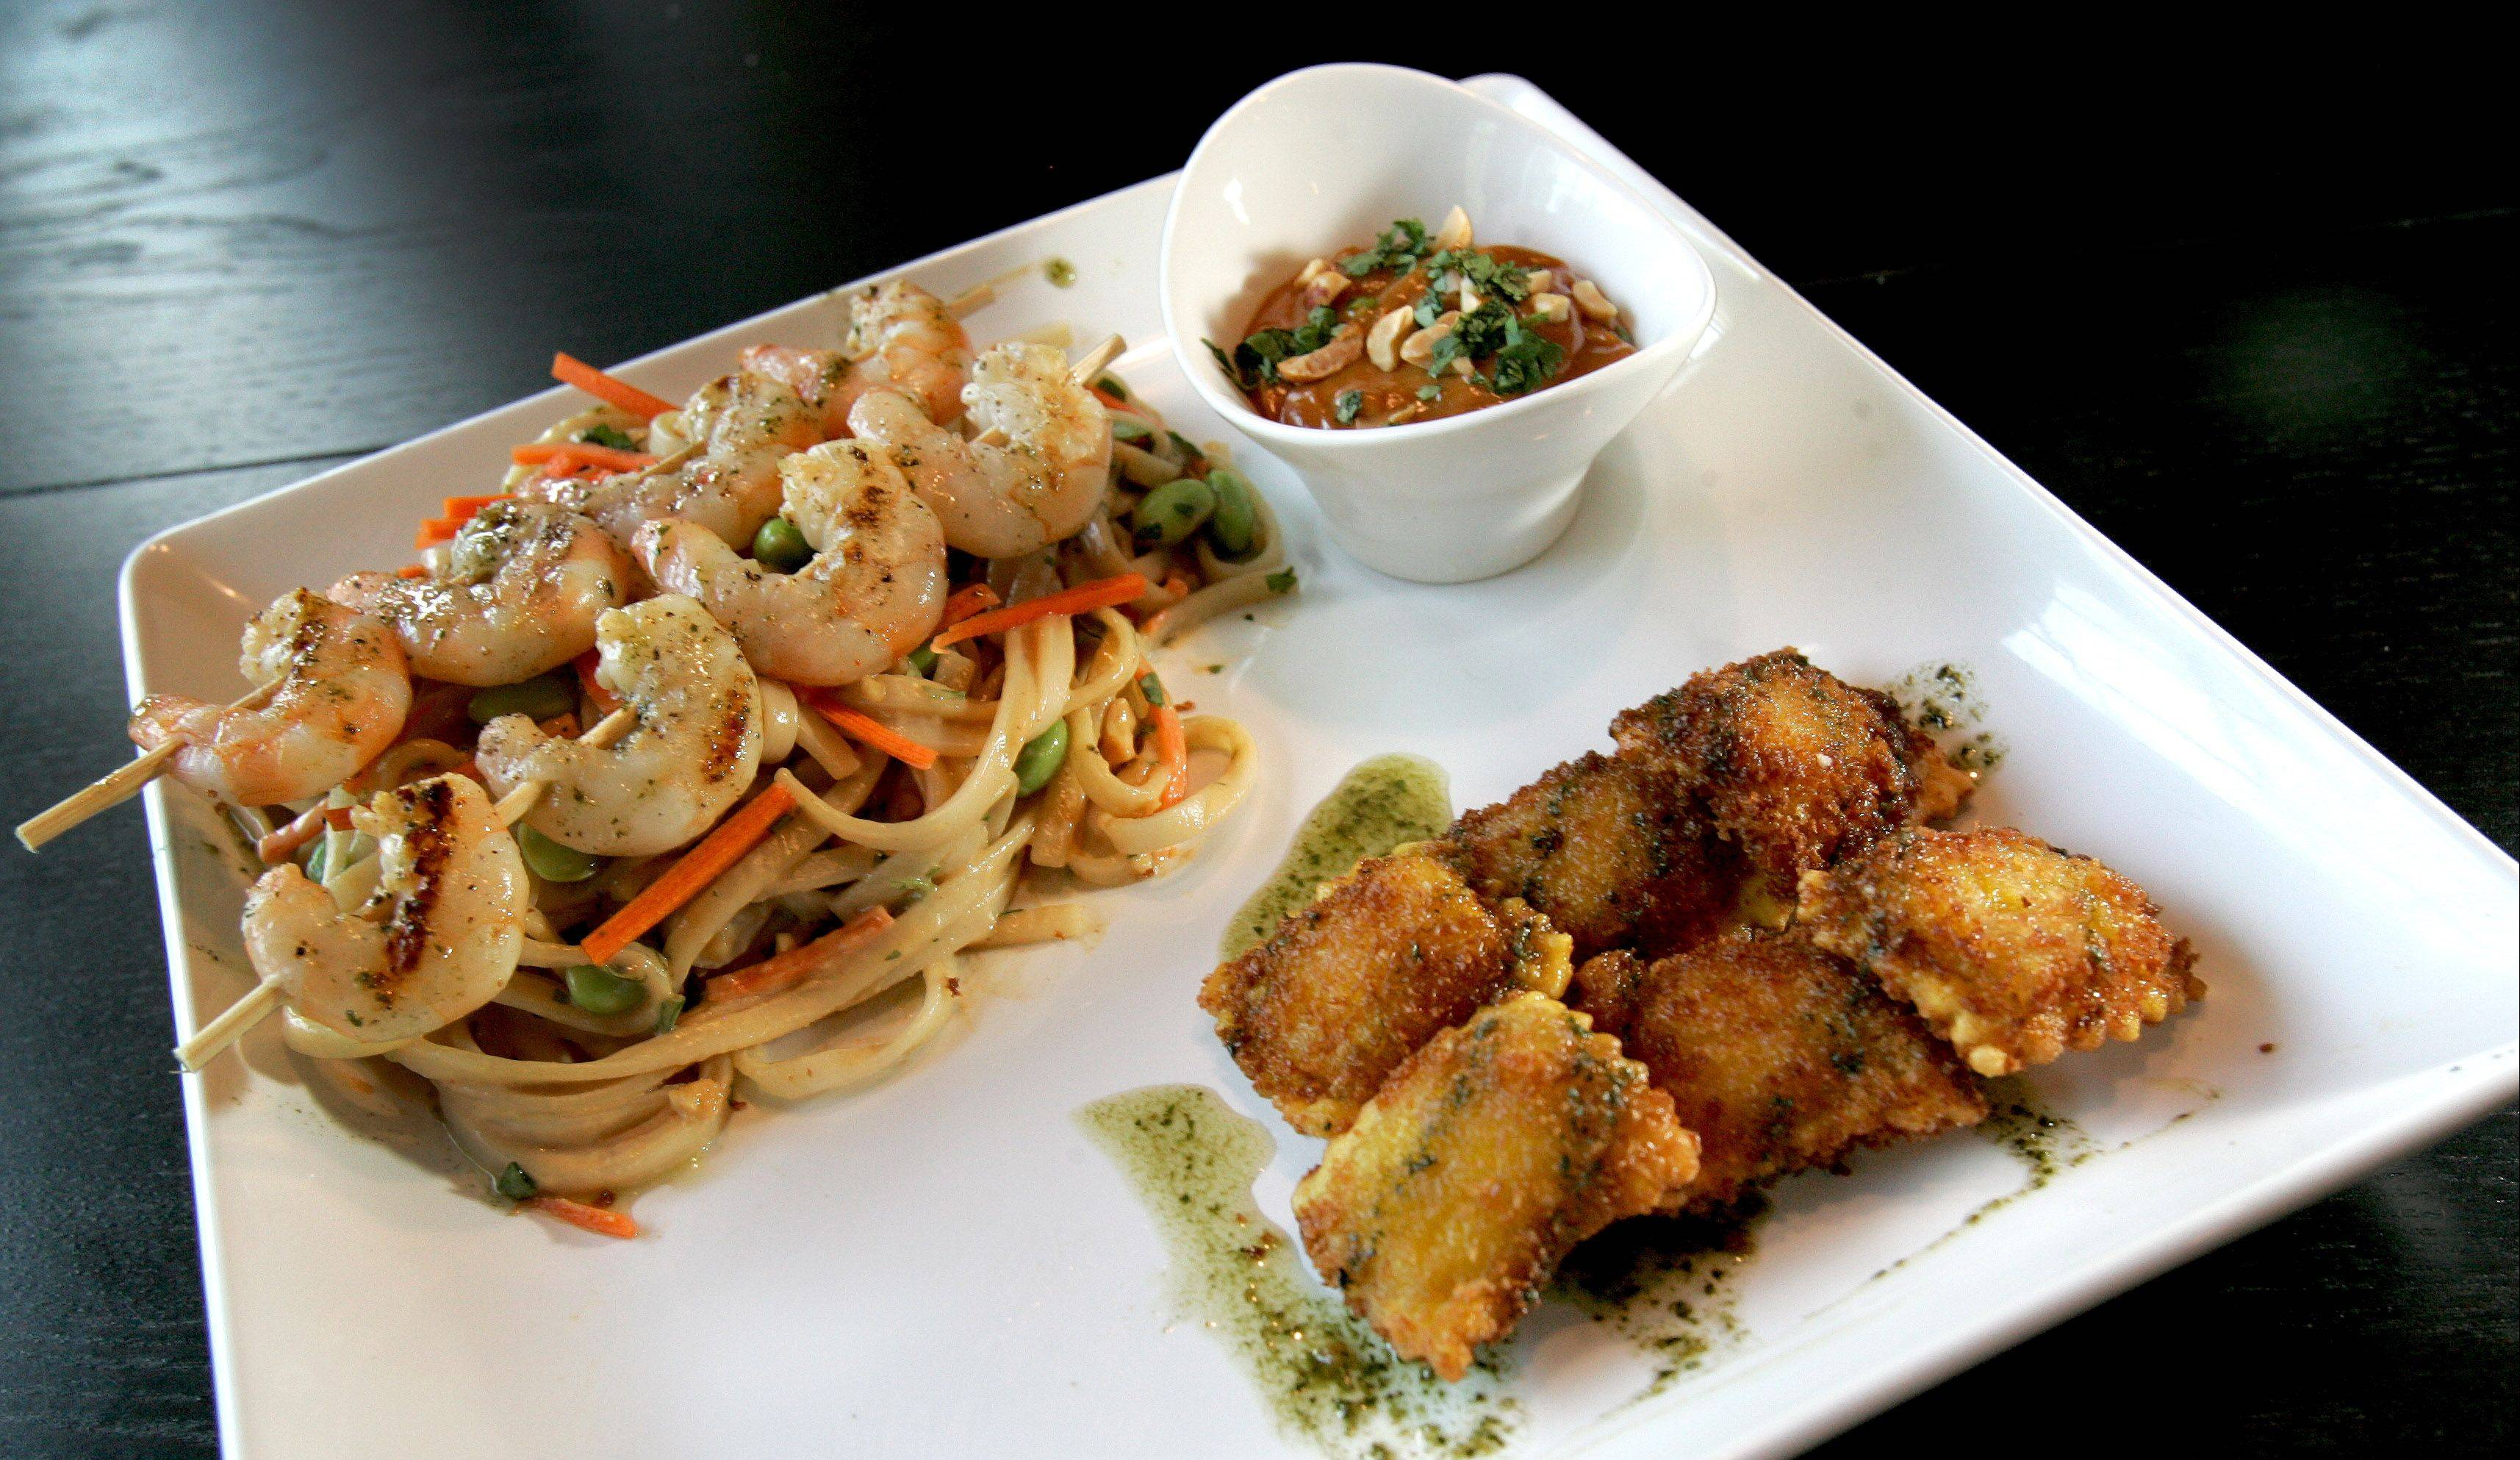 Thai Shrimp and Noodles with Fried Asian Ravioli